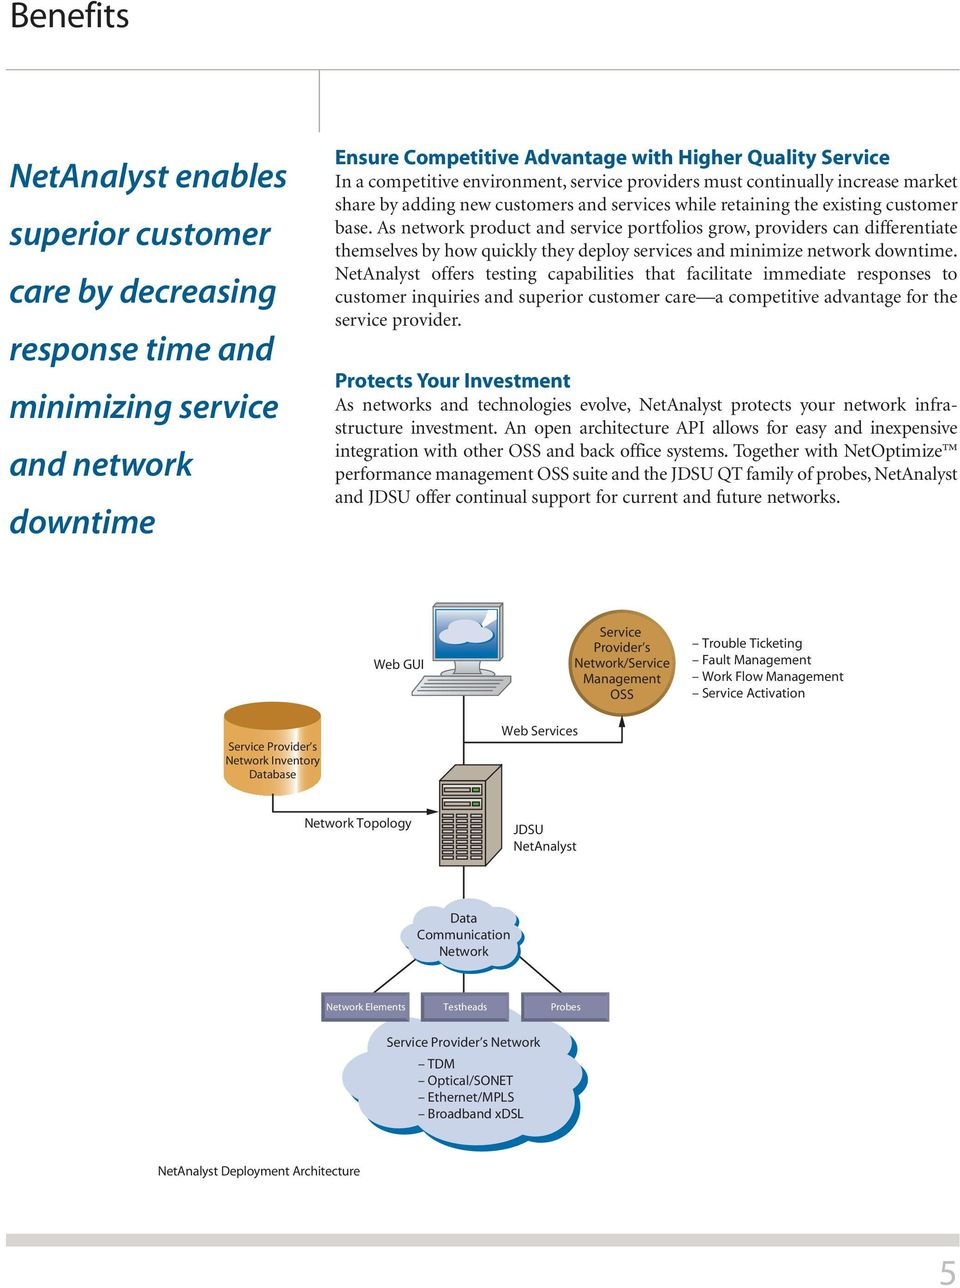 As network product and service portfolios grow, providers can differentiate themselves by how quickly they deploy services and minimize network downtime.